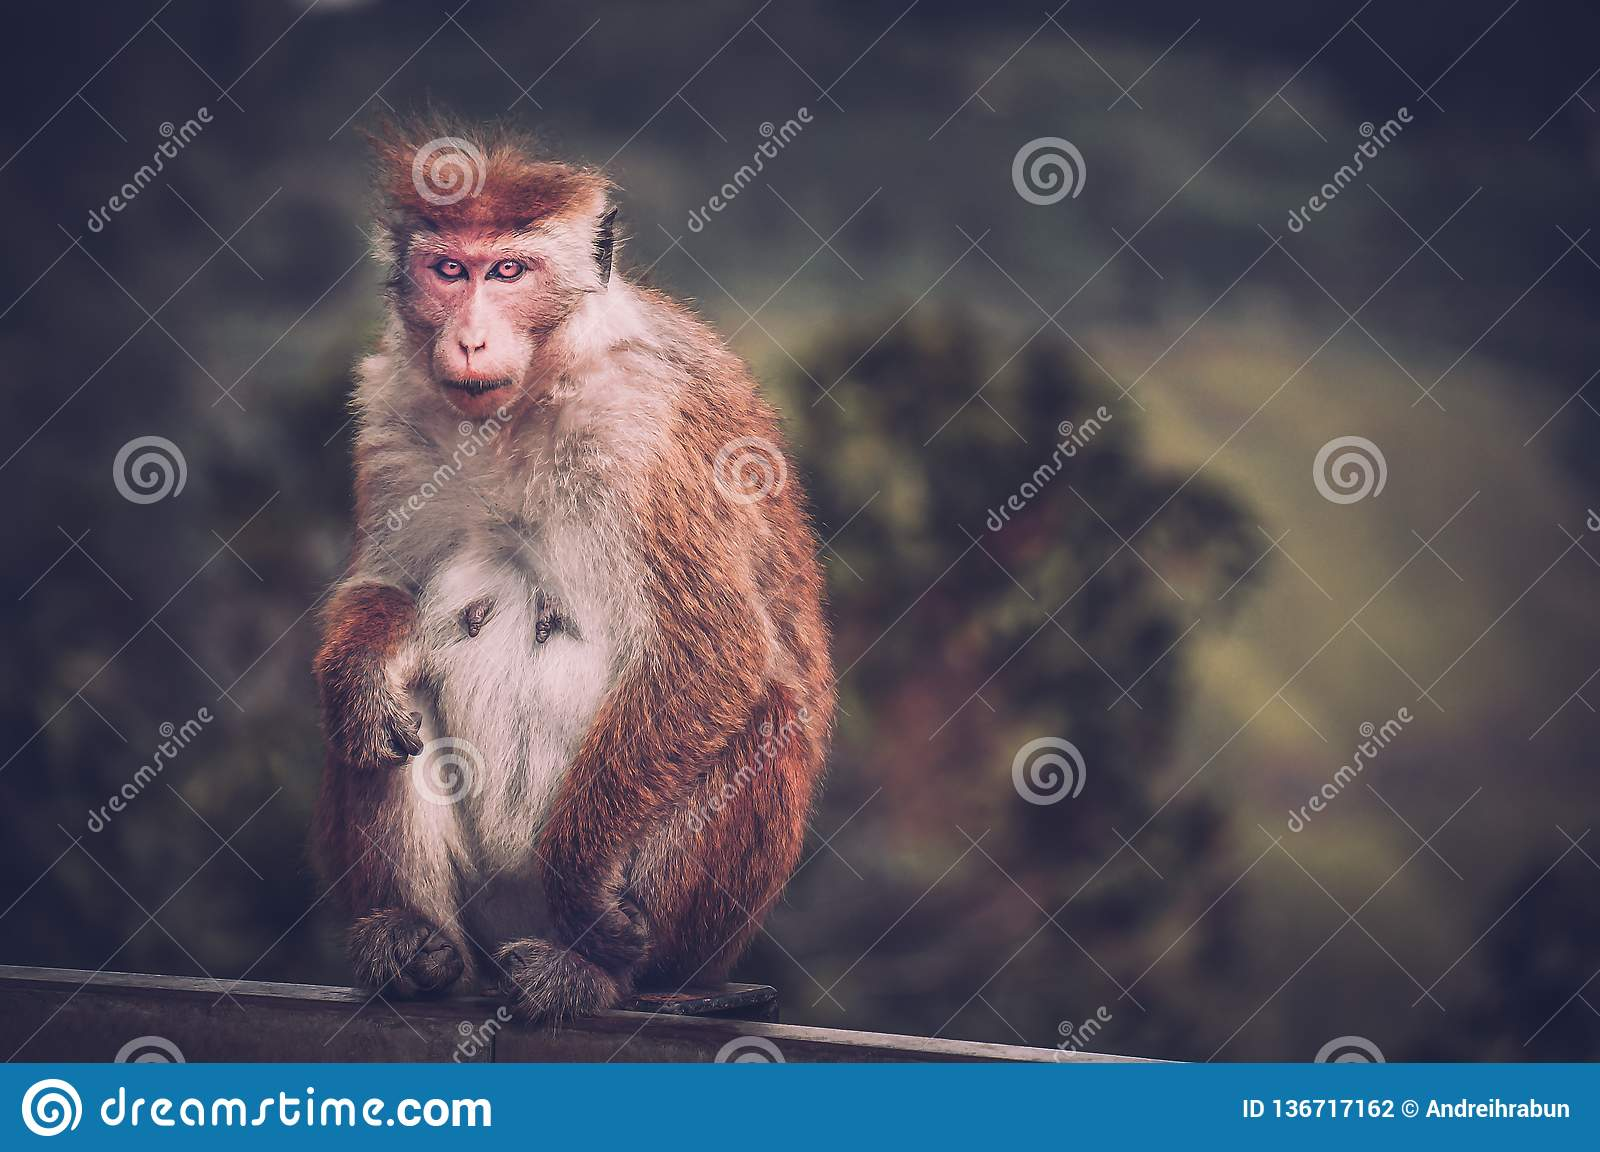 Picture Of Scary Monkey With Red Eyes Watching In The Camera Toned